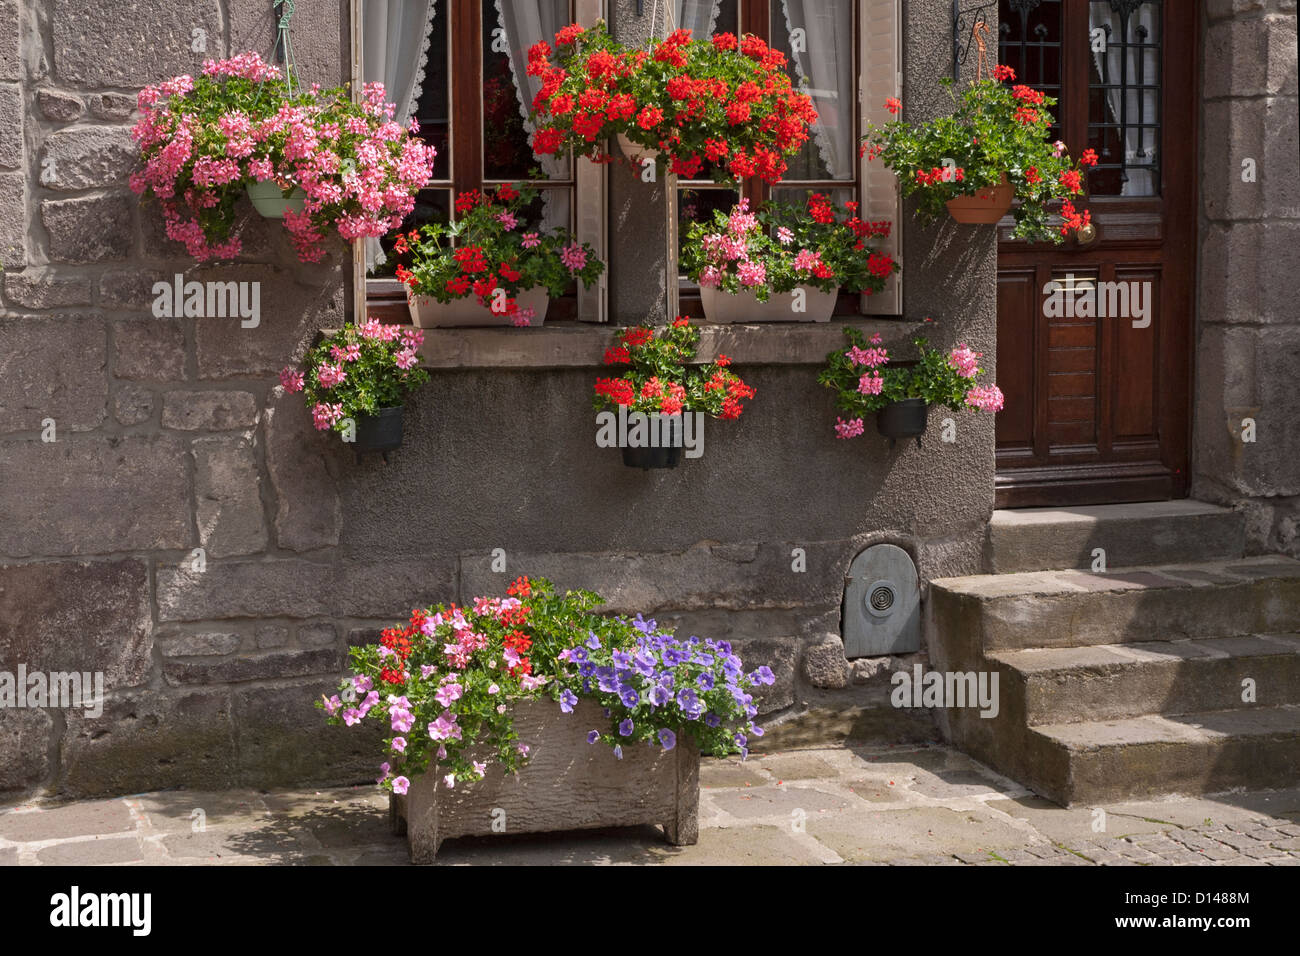 summer plant pots and hanging baskets full of flowers mostly geraniums at front doorway and steps of house. - Stock Image